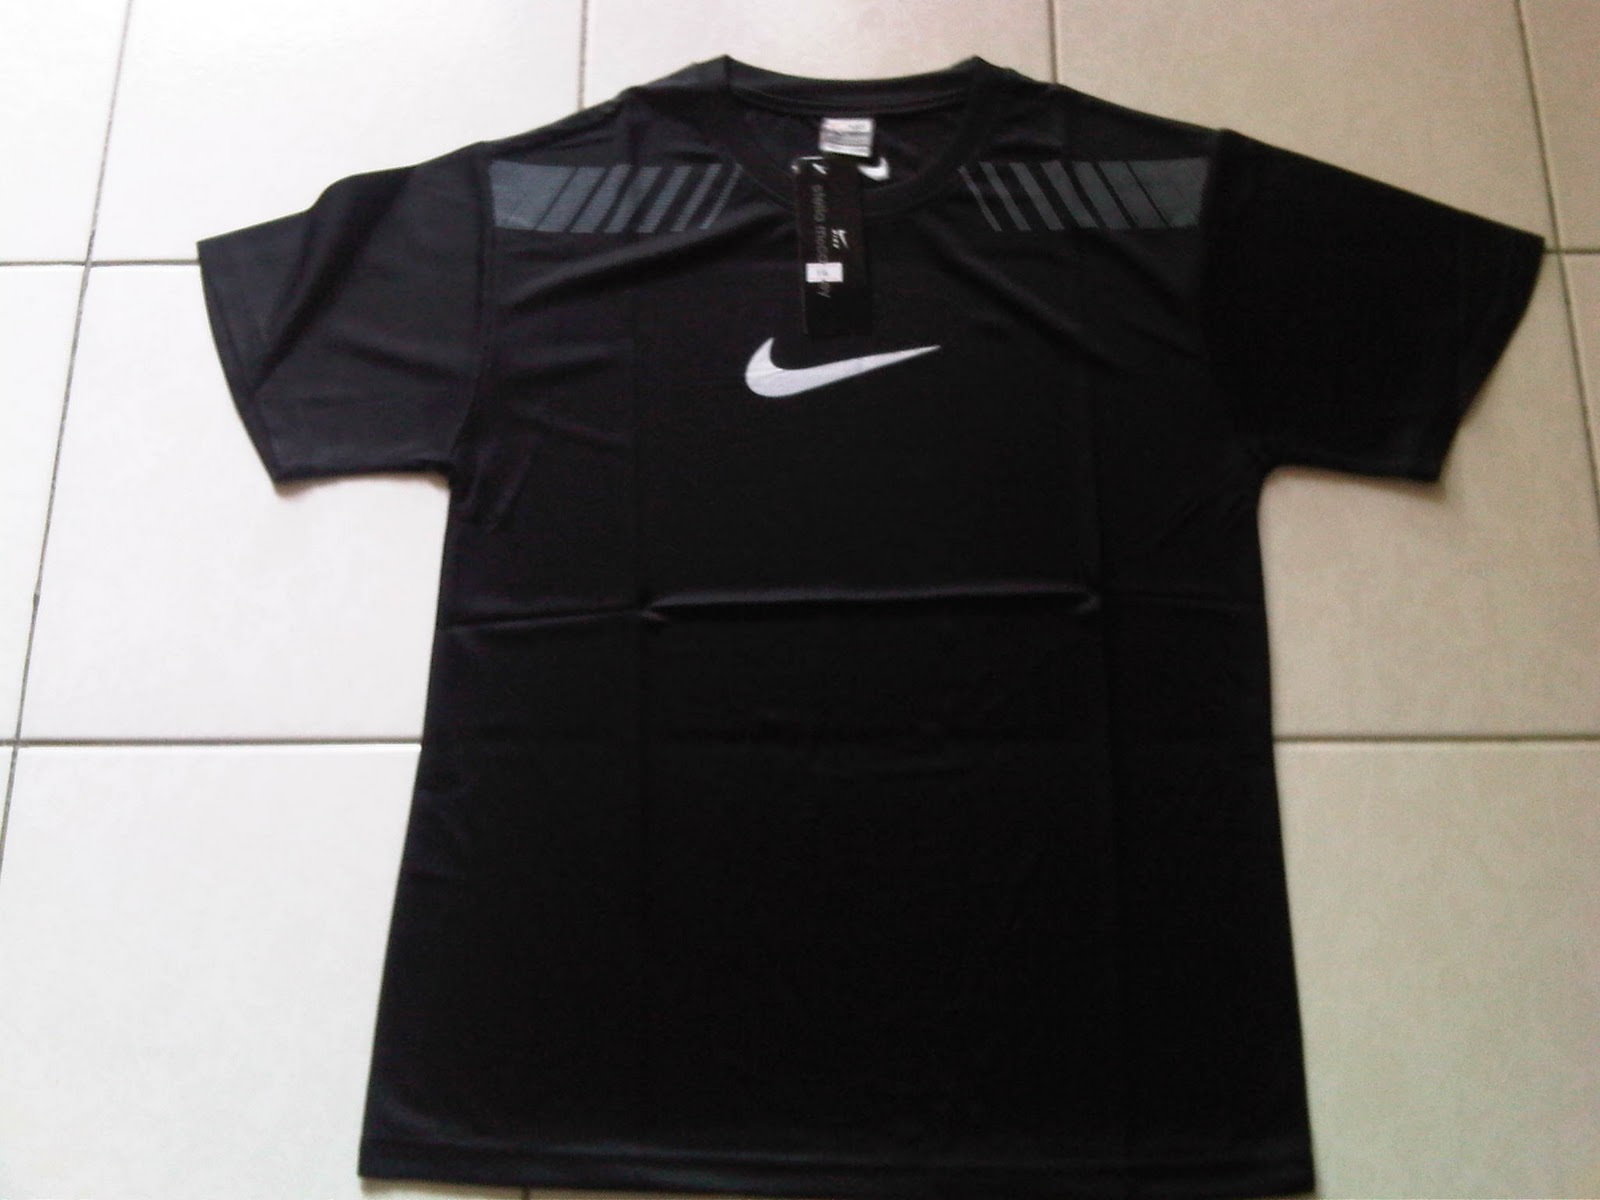 Branded Casual Sport Outfit Wear Nike Dry Fit T Shirt